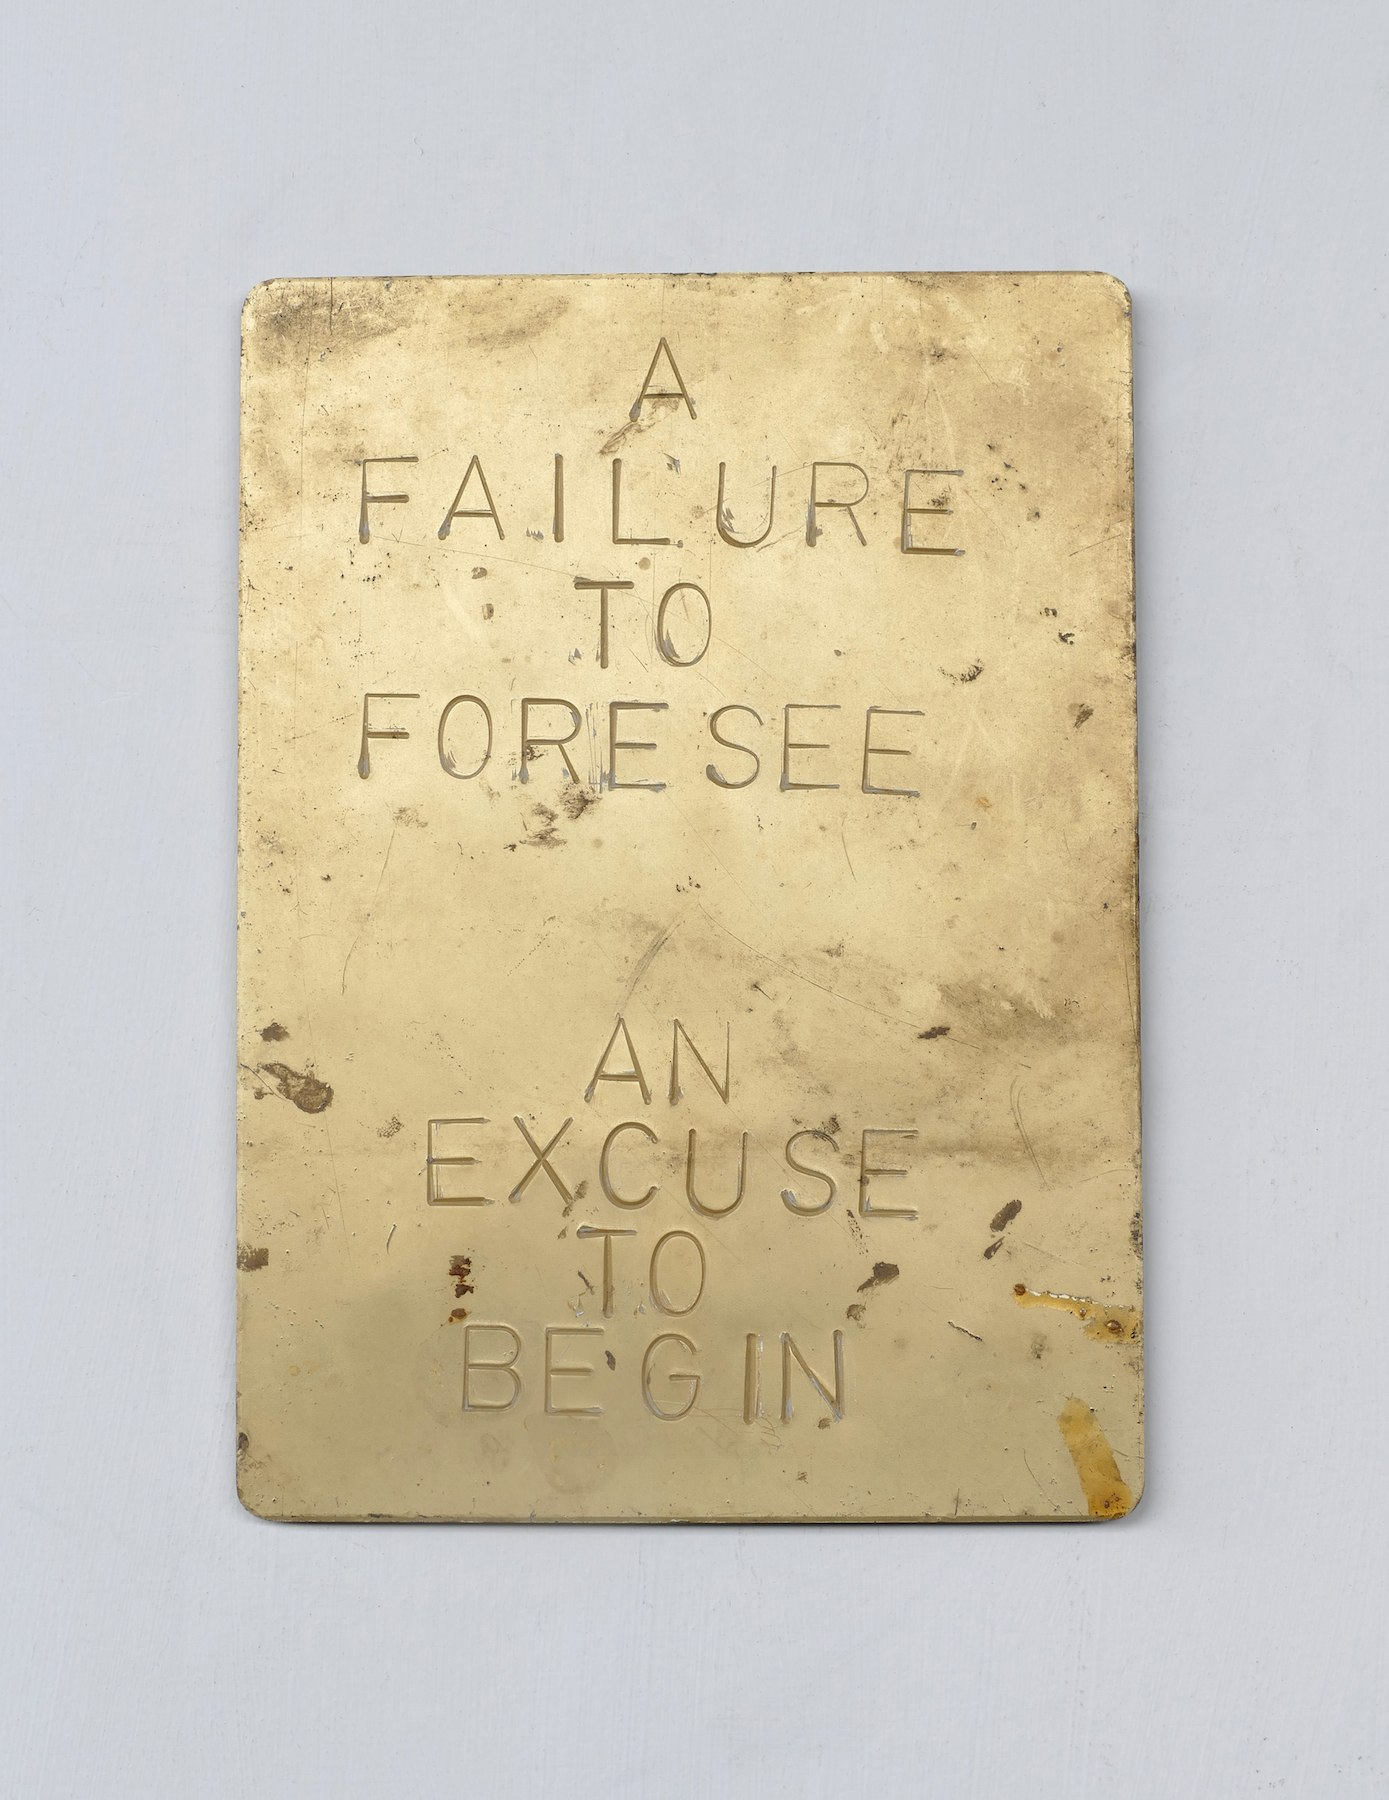 A FAILURE TO FORESEE AN EXCUSE TO BEGIN